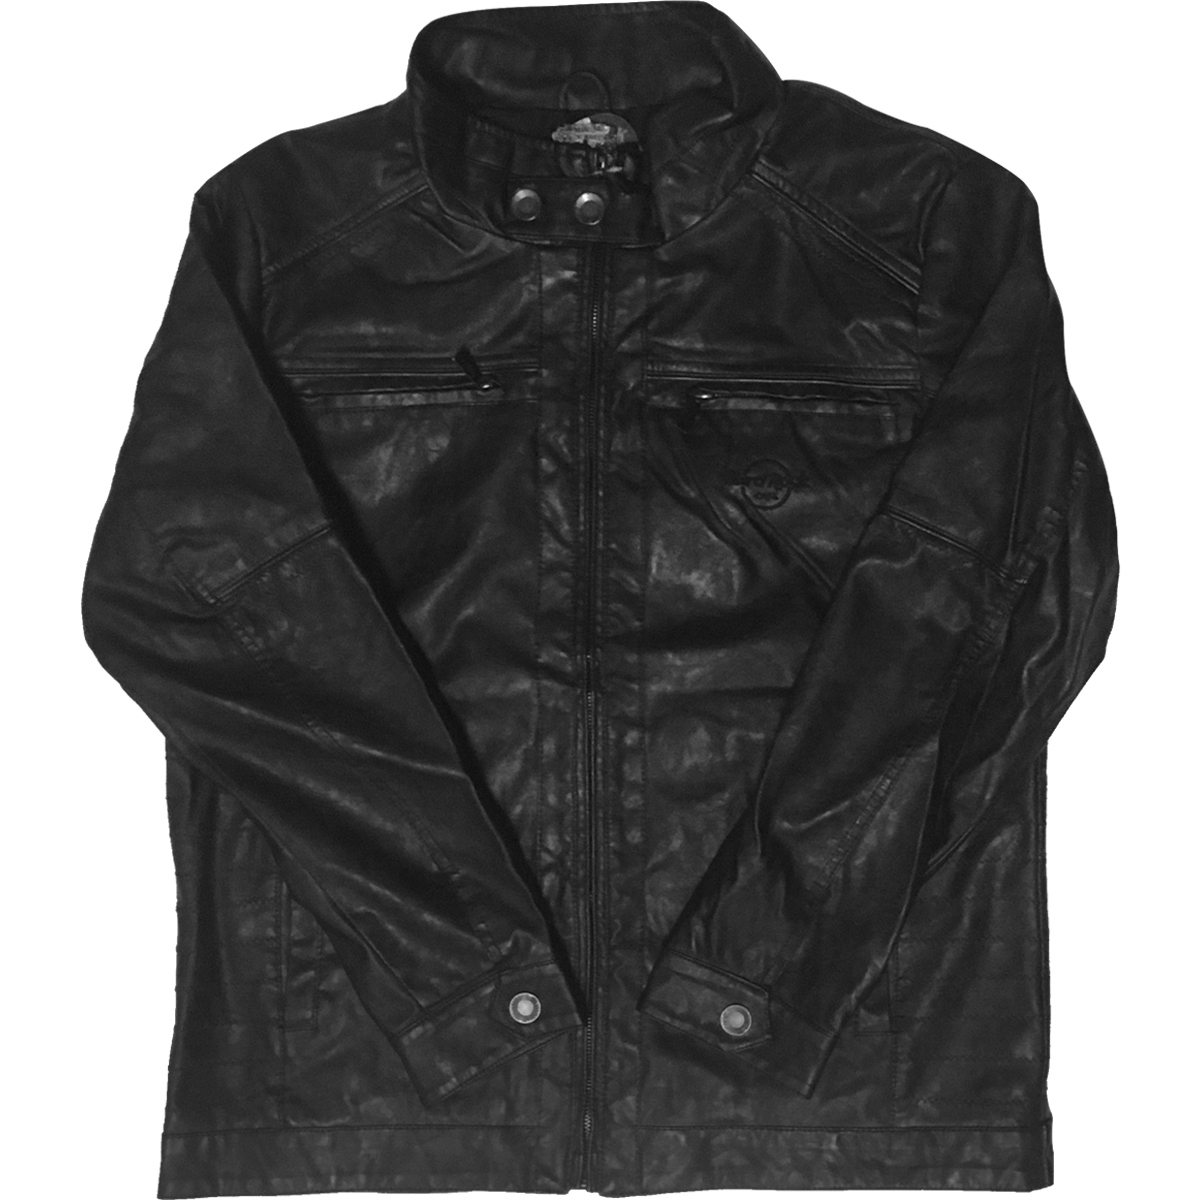 Guitar Company Washed Vegan Leather Jacket 0